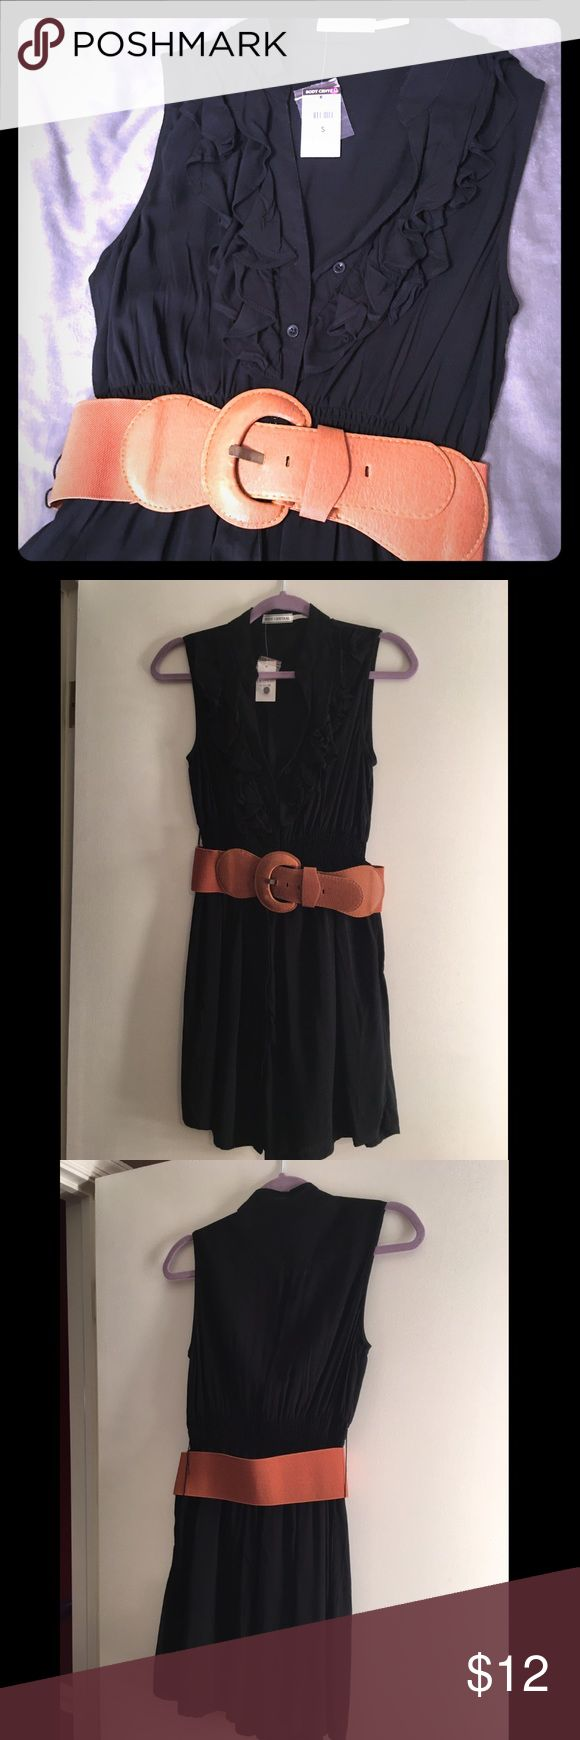 Black Ruffled belted dress Very comfortable!!! Can dress up or down. 100% rayon. Non see through. Comes from smoke free, pet free home. Shipping dates are Tuesday through Friday Body Central Dresses Midi